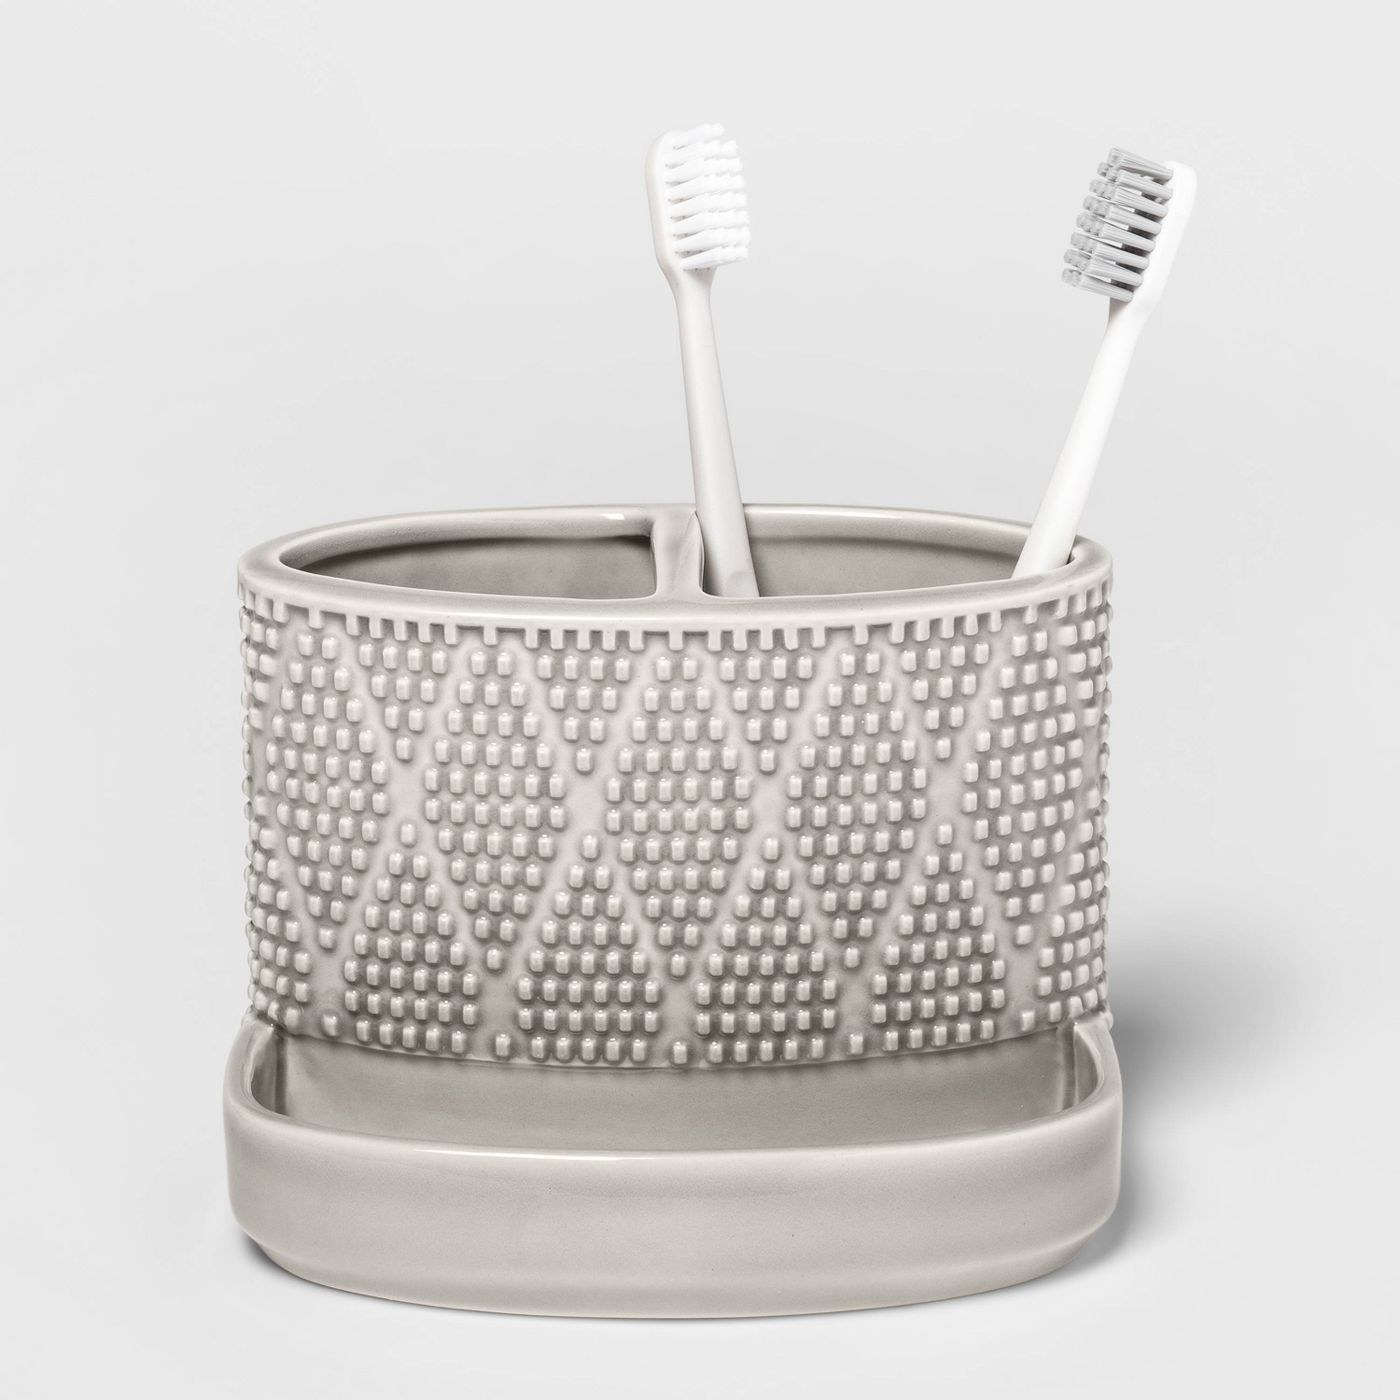 The grey caddy, which is cup-shaped, with a divided running across the middle of the cup, and a small tray extending from the base for floss, etc